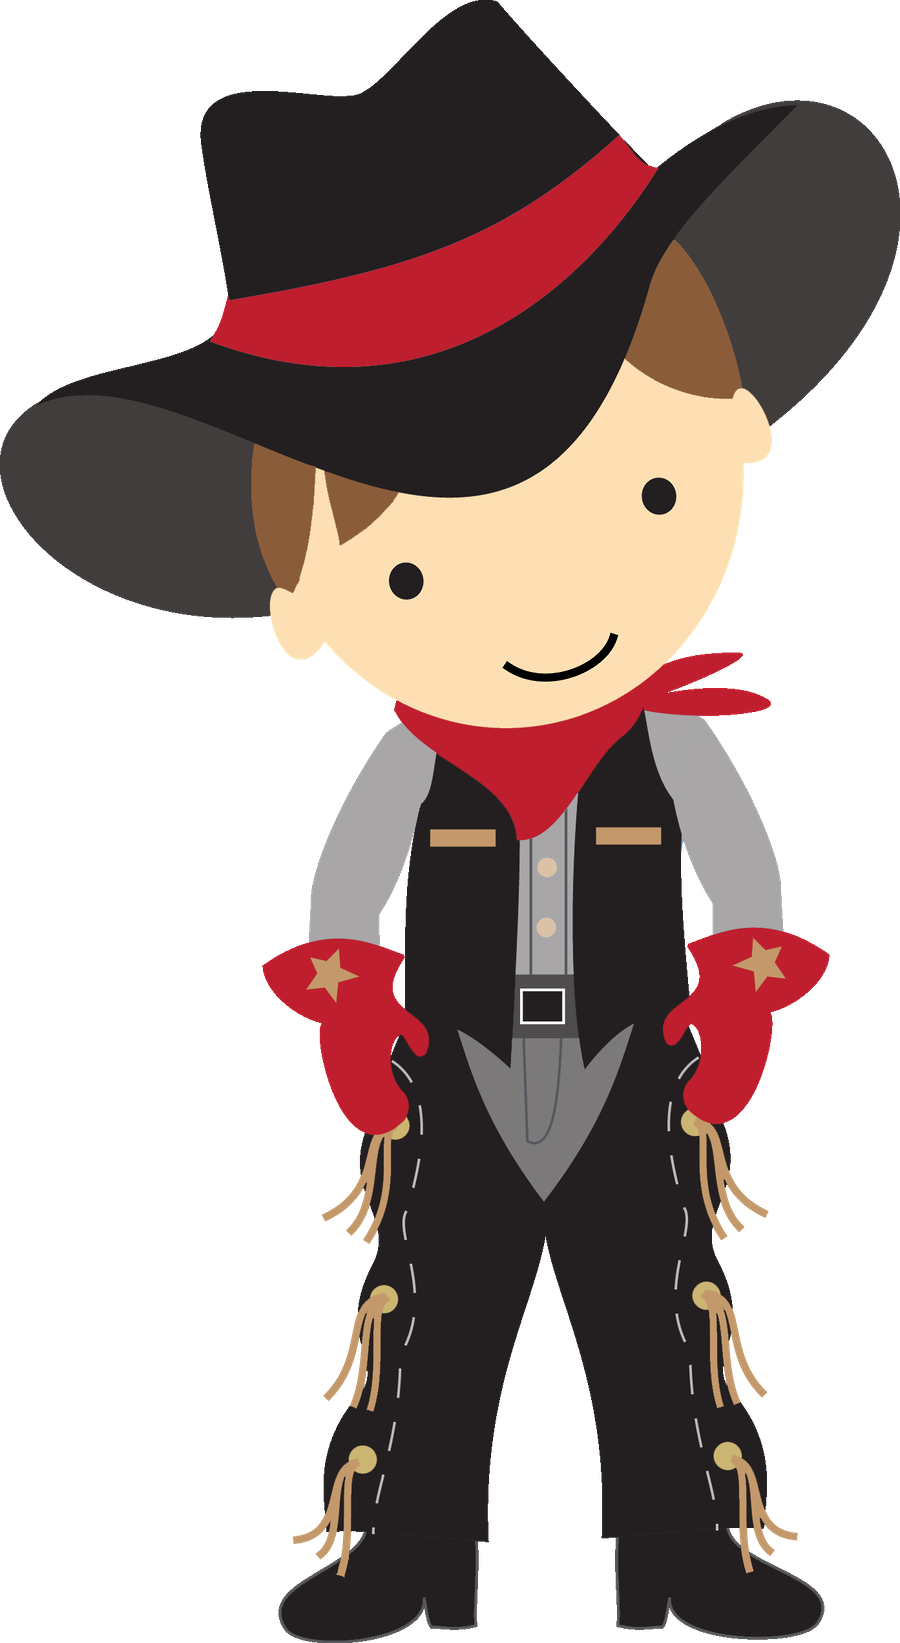 Cowboy christmas clipart svg library library COWBOY CLIP ART | Clip Art | Pinterest | Cowboys, Clip art and Scrap svg library library